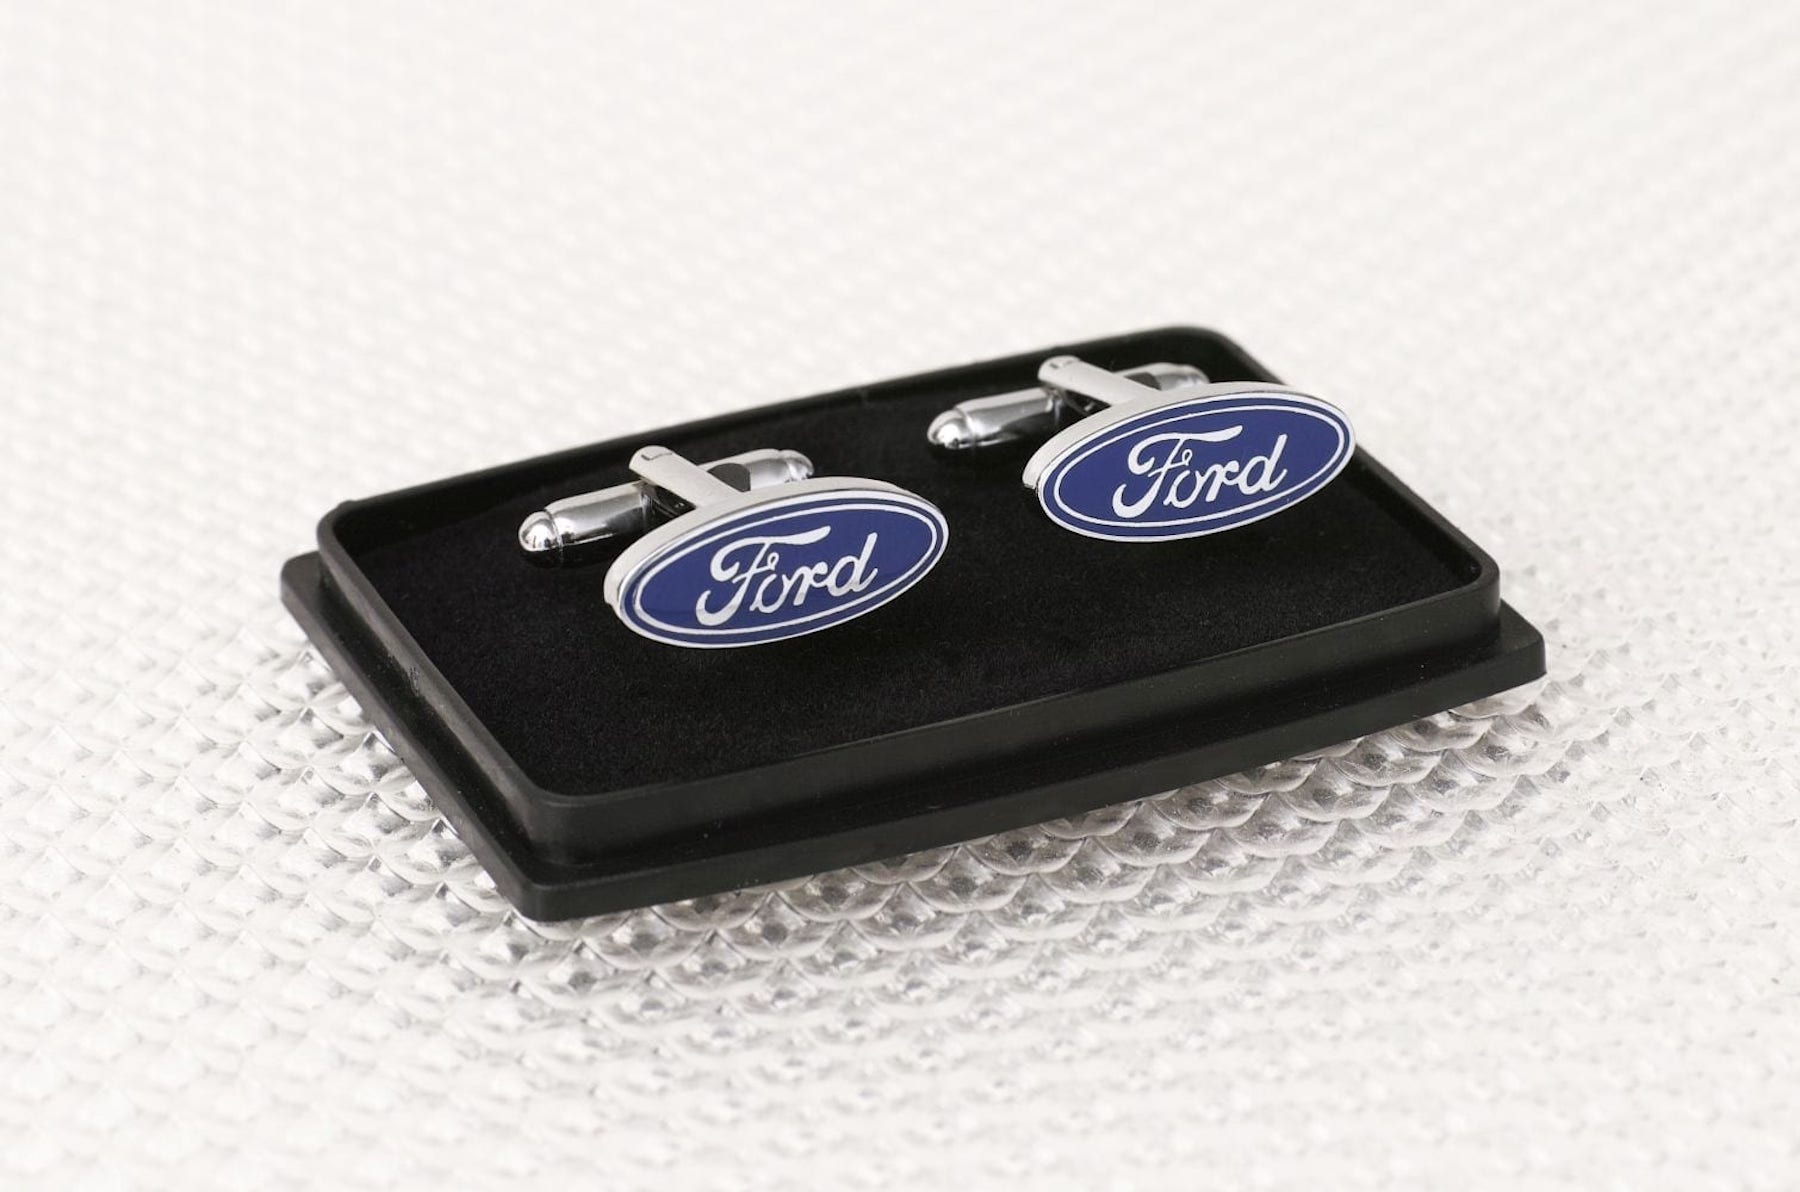 Official Licensed Ford Merchandise Ford logo cufflinks Shirt Suit Accessory